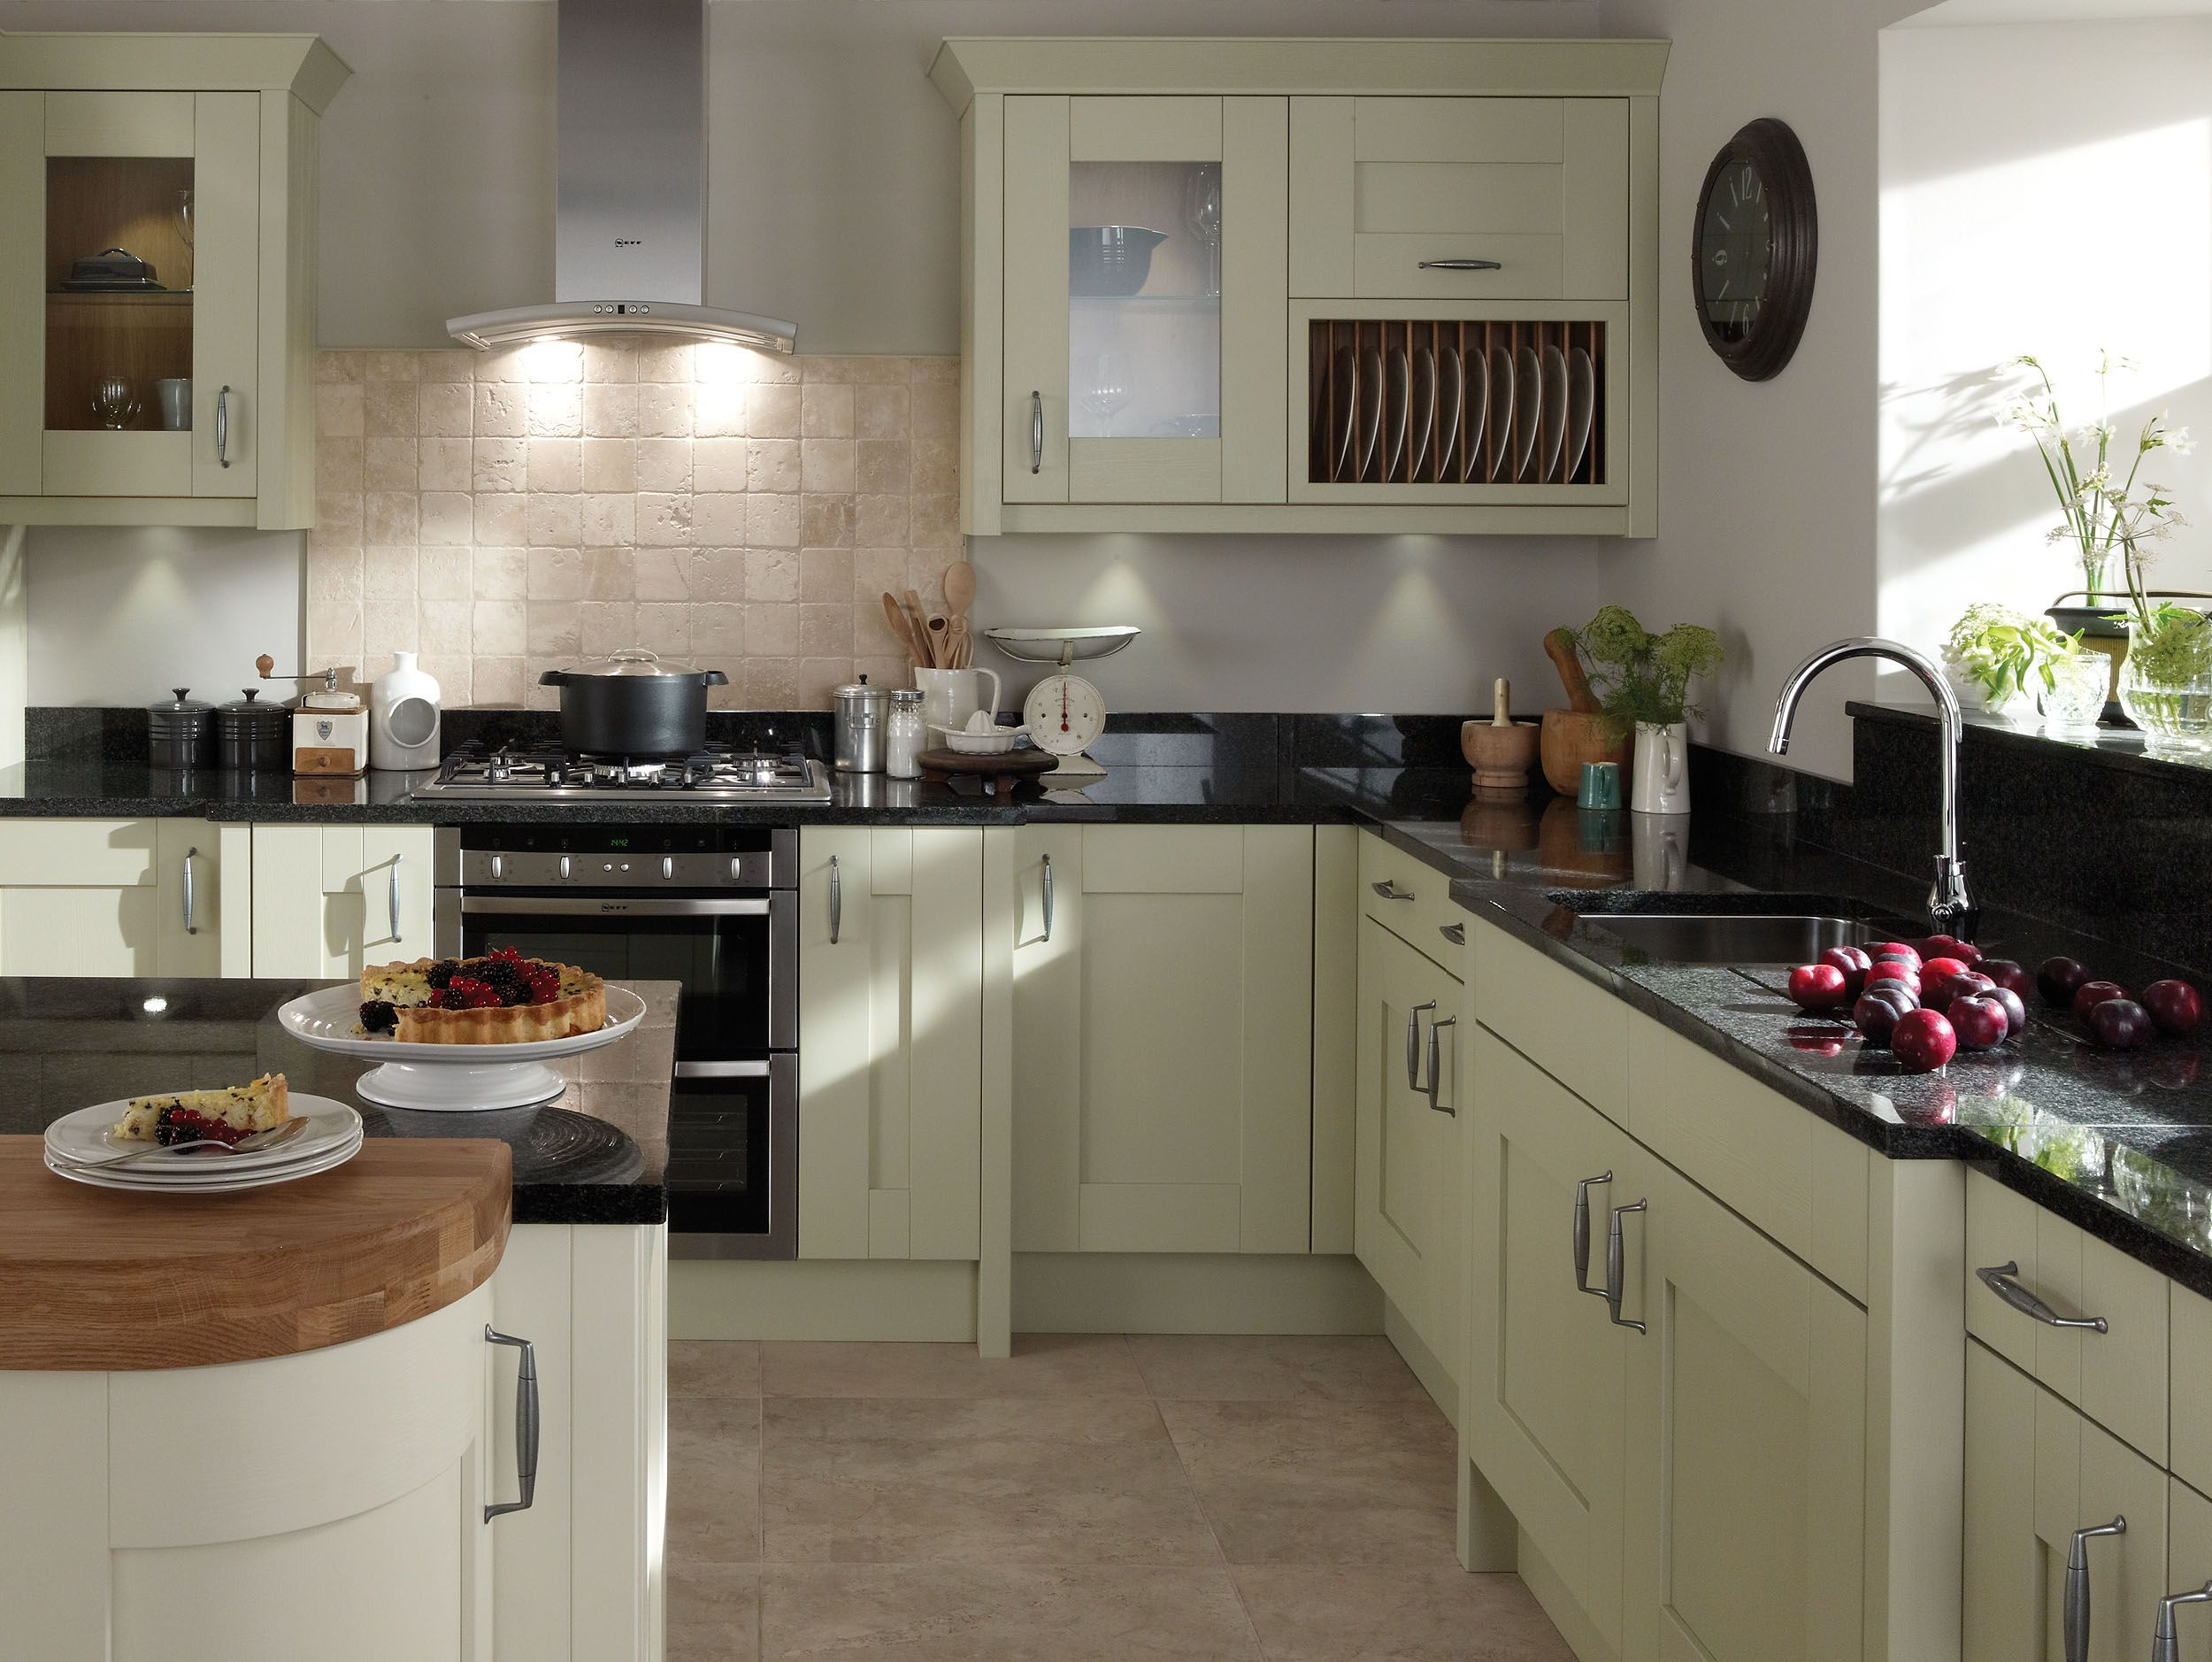 Uncategorized Green Kitchen Units sage kitchens using this kitchen range milbourne design buy your online all of our units doors accessories are available to ord